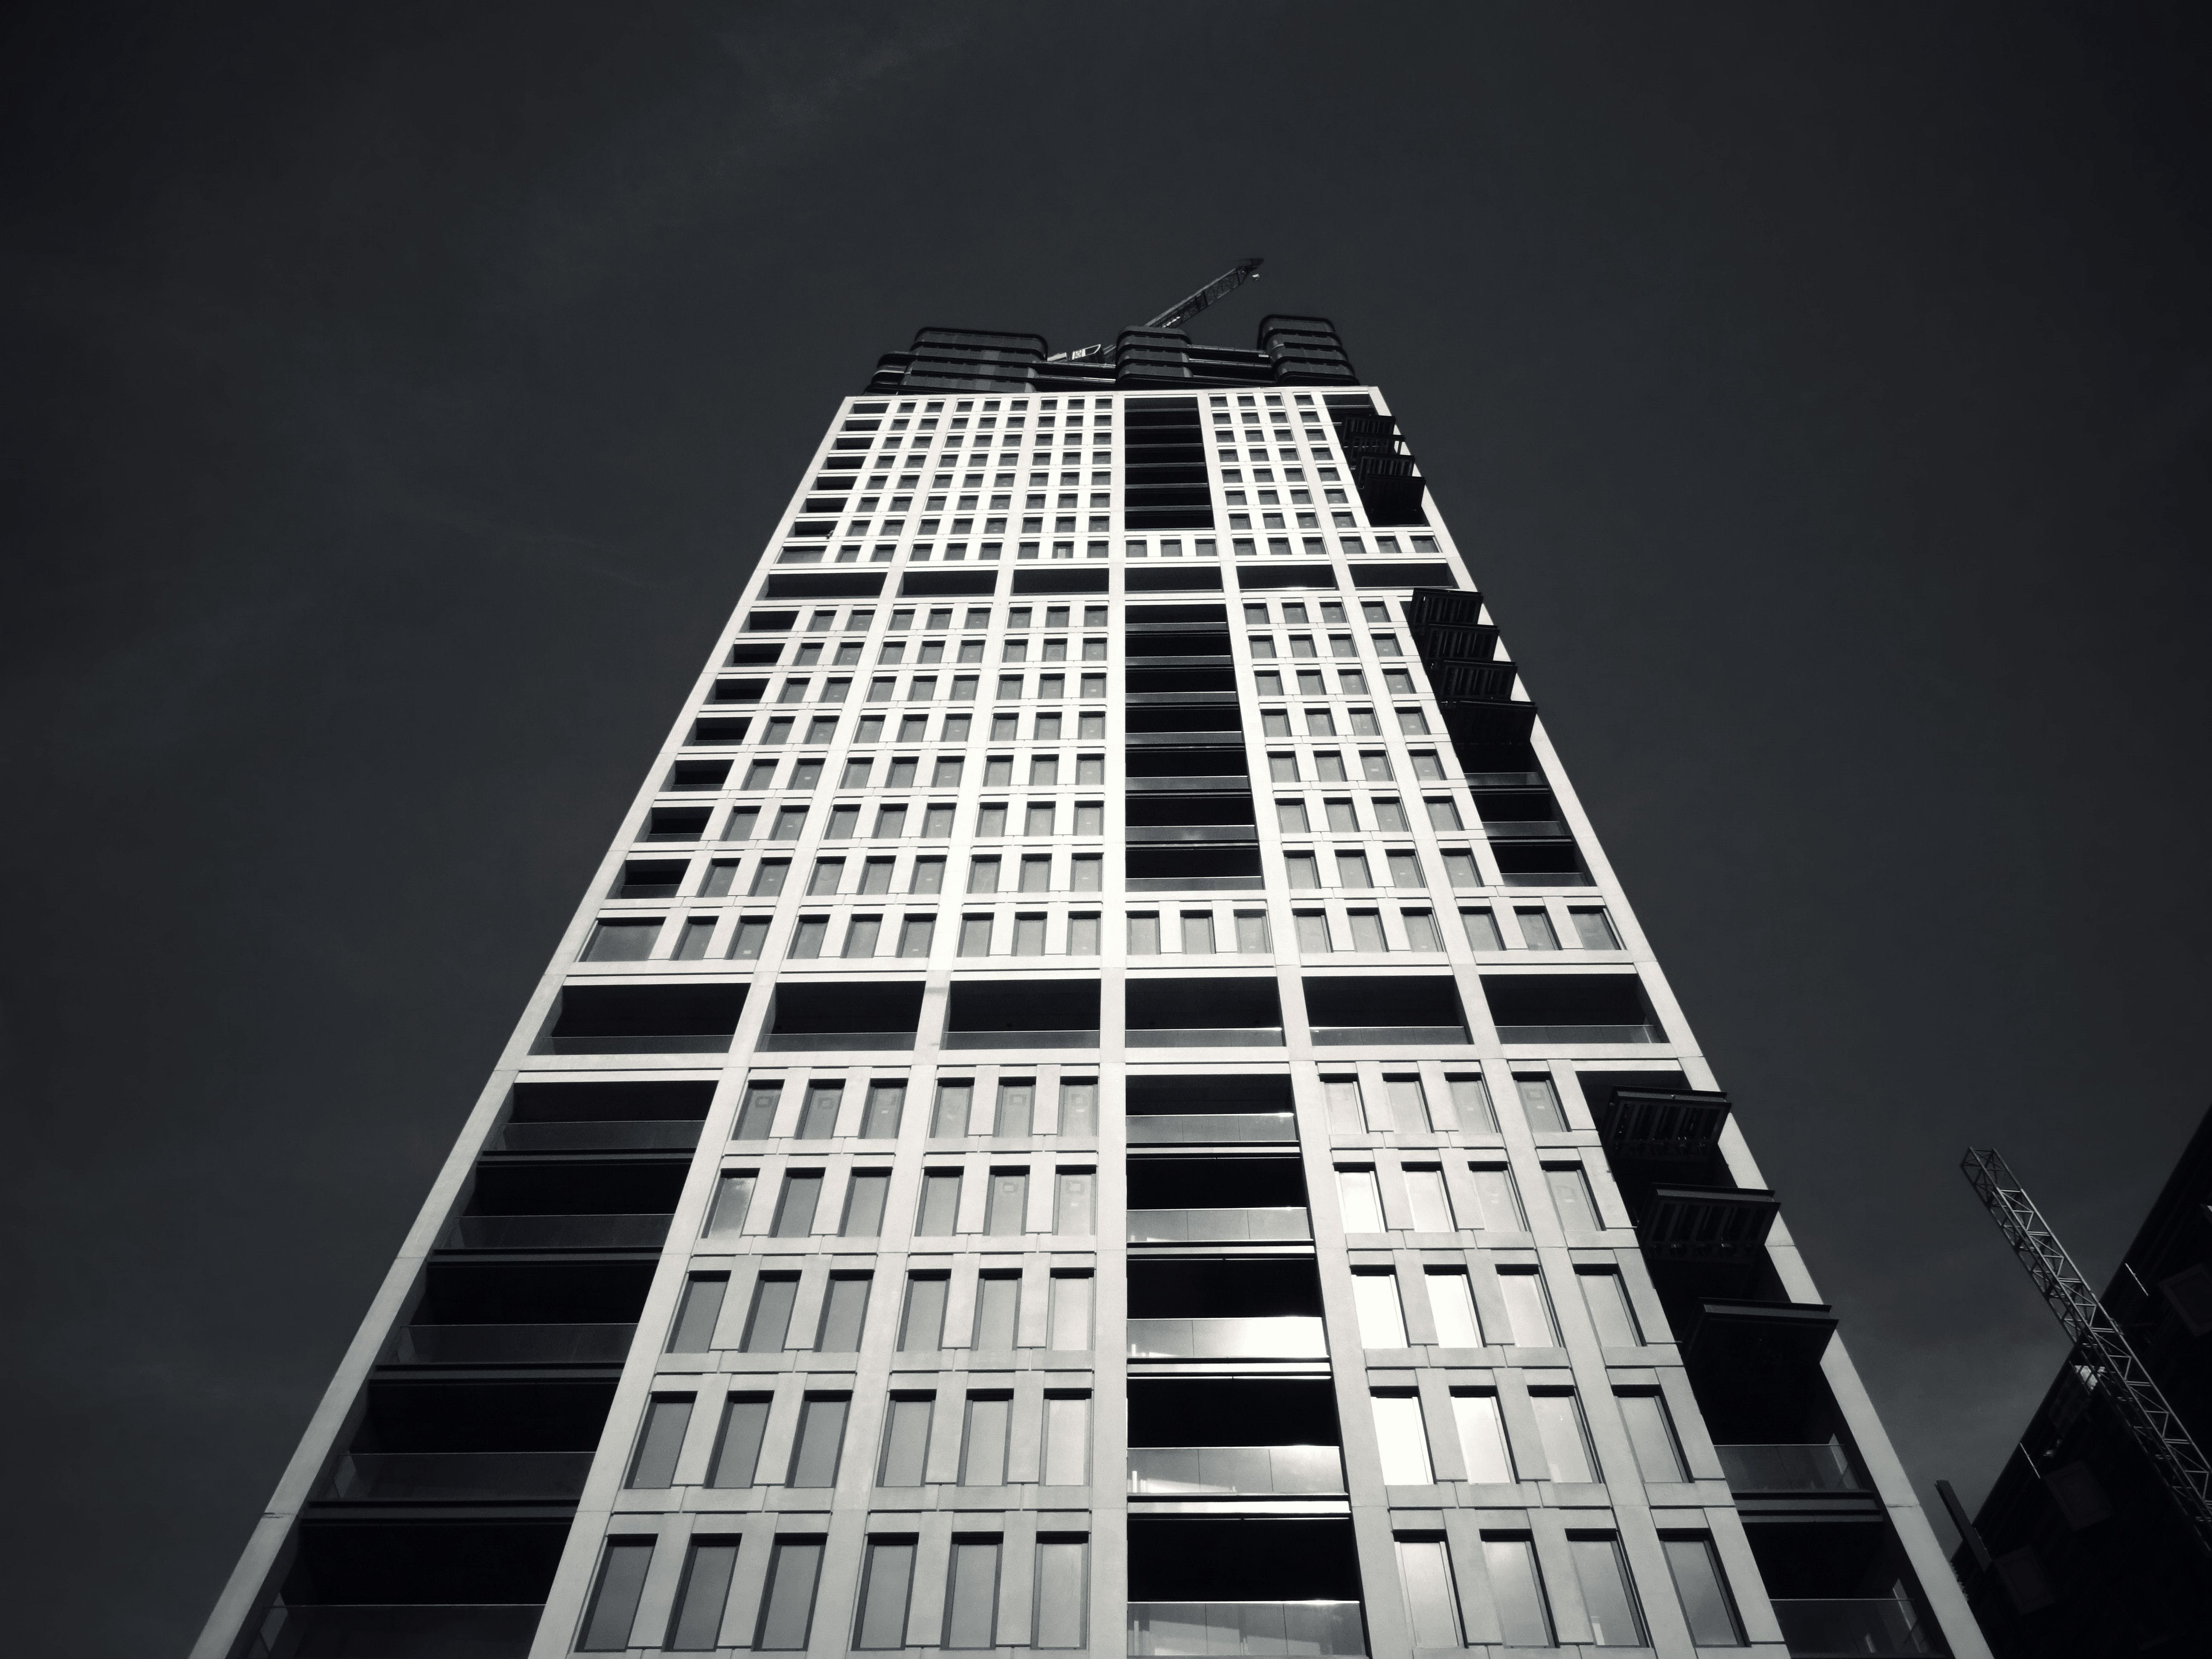 Gray-scale Building